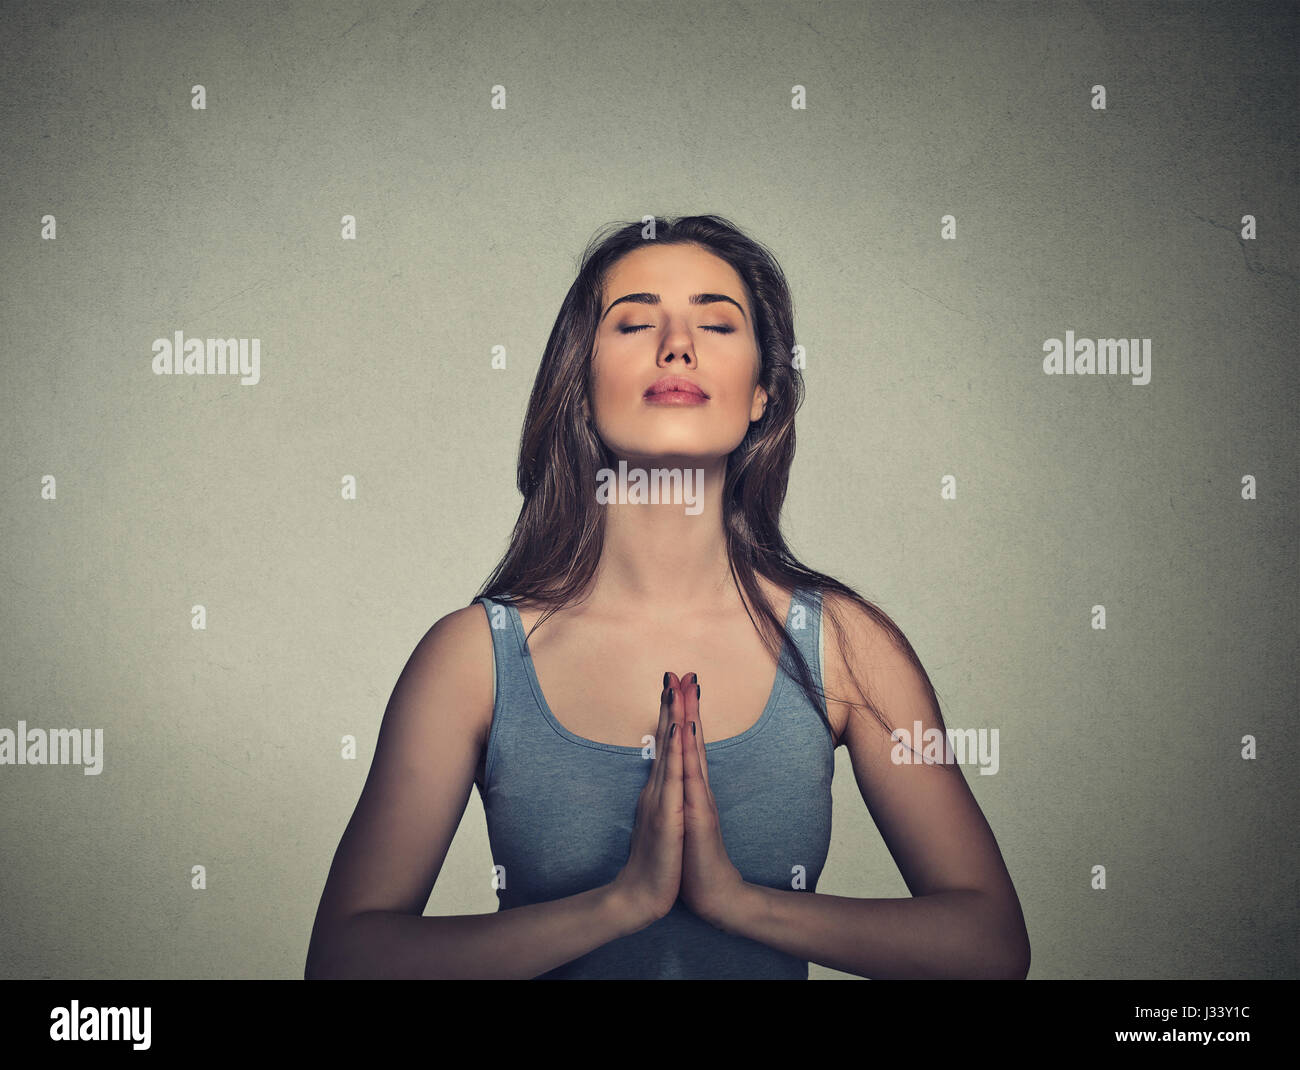 Portrait beautiful woman meditating with eyes closed isolated on gray wall background Stock Photo